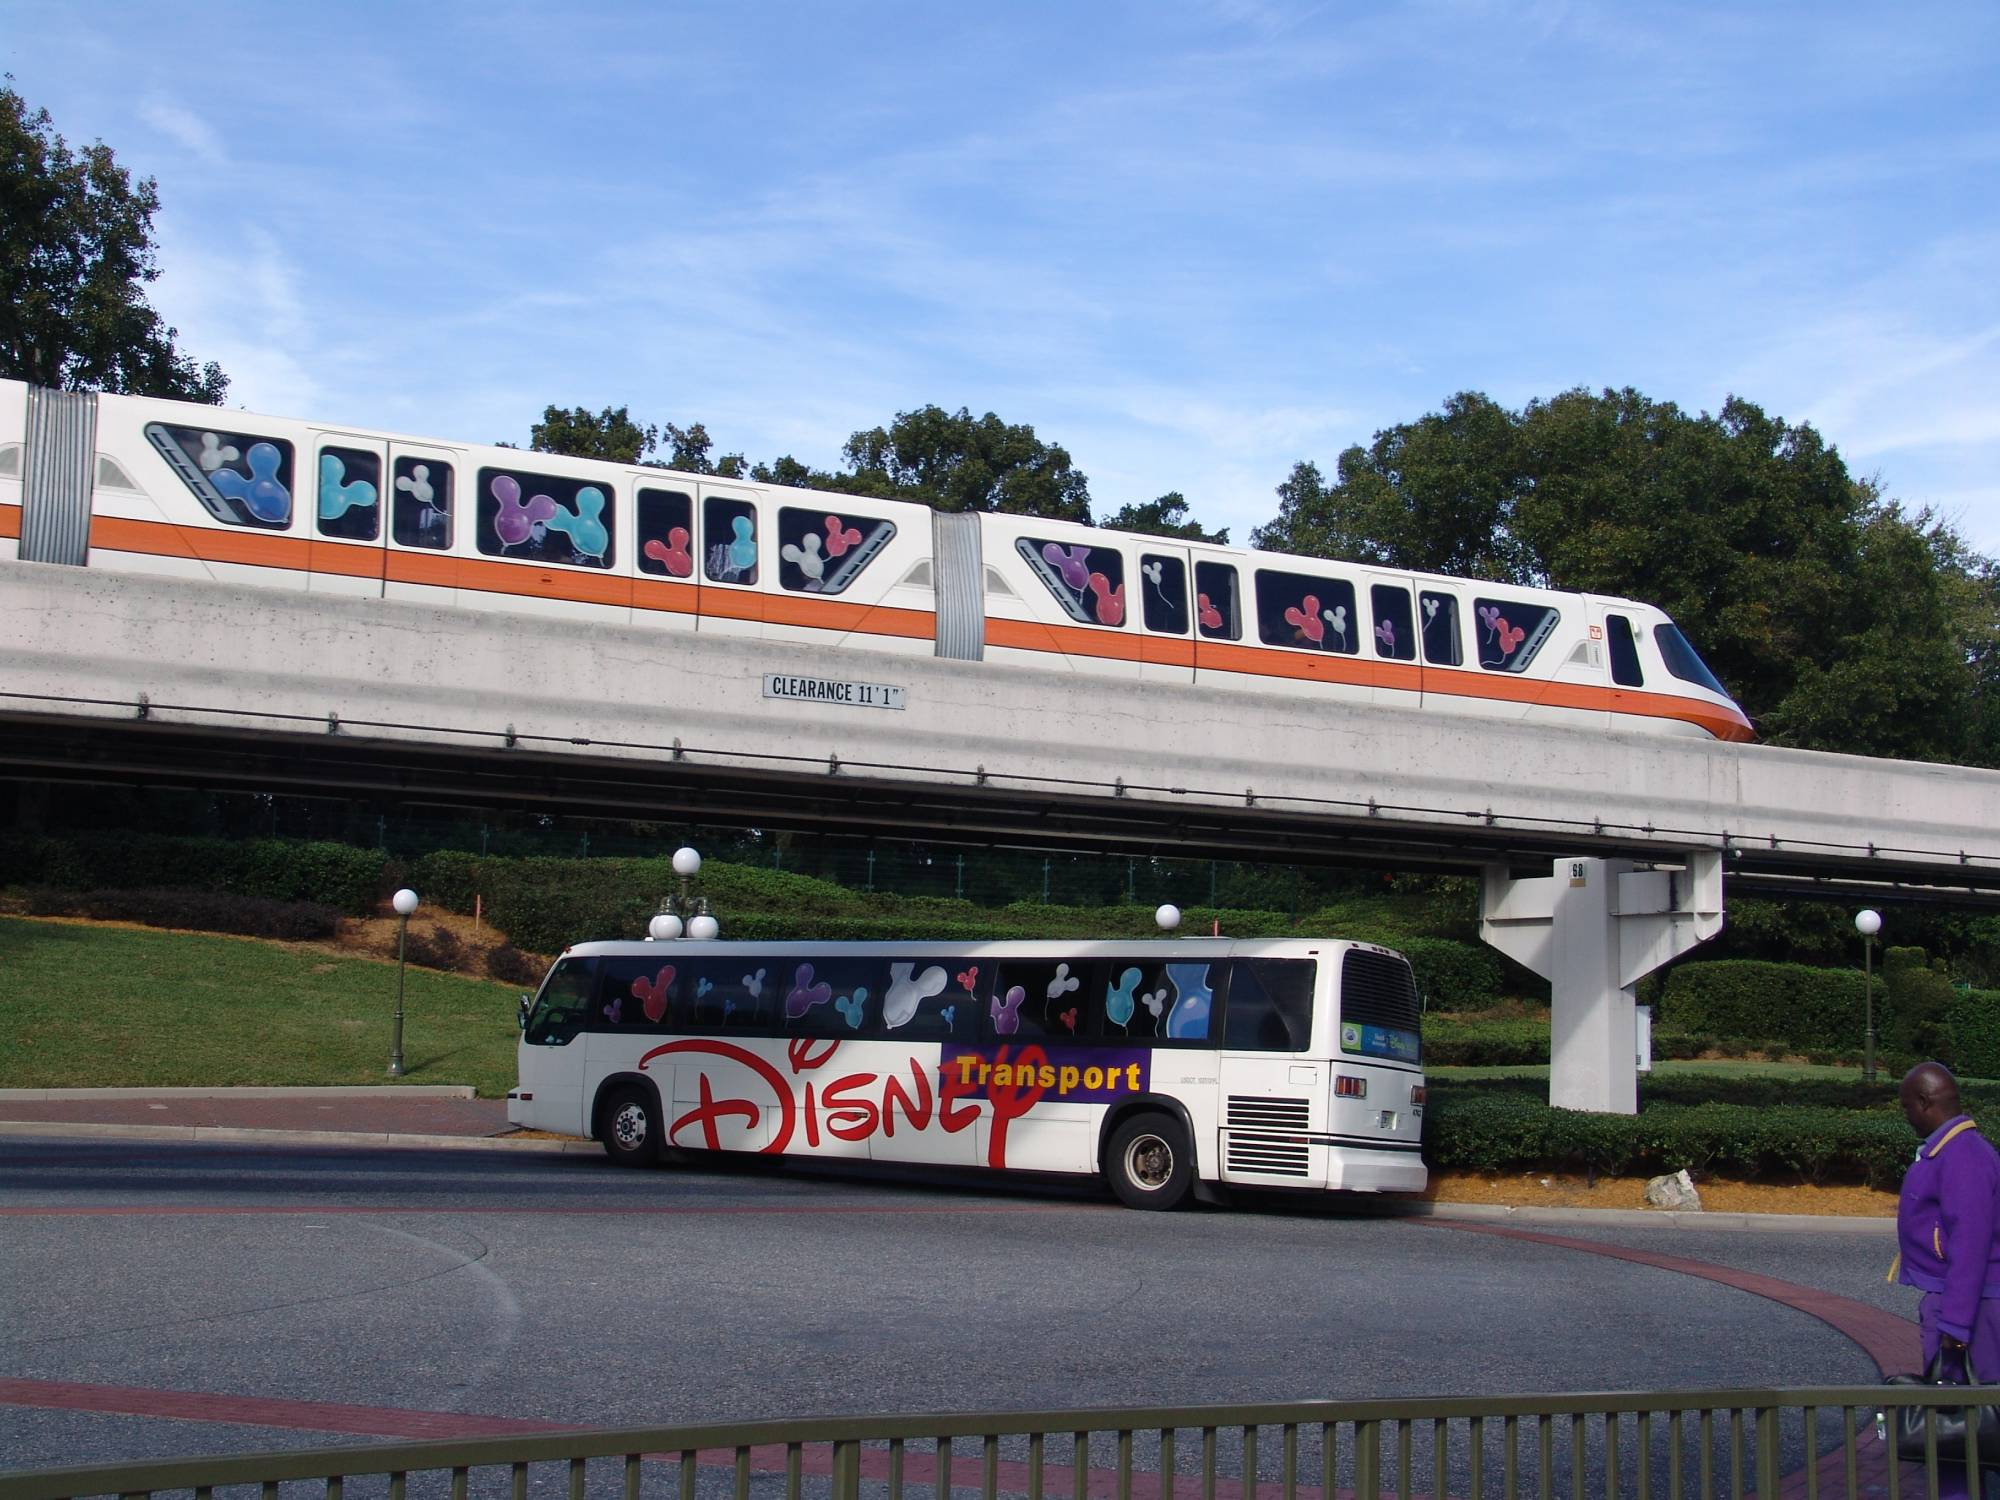 Disney bus and monorail photo